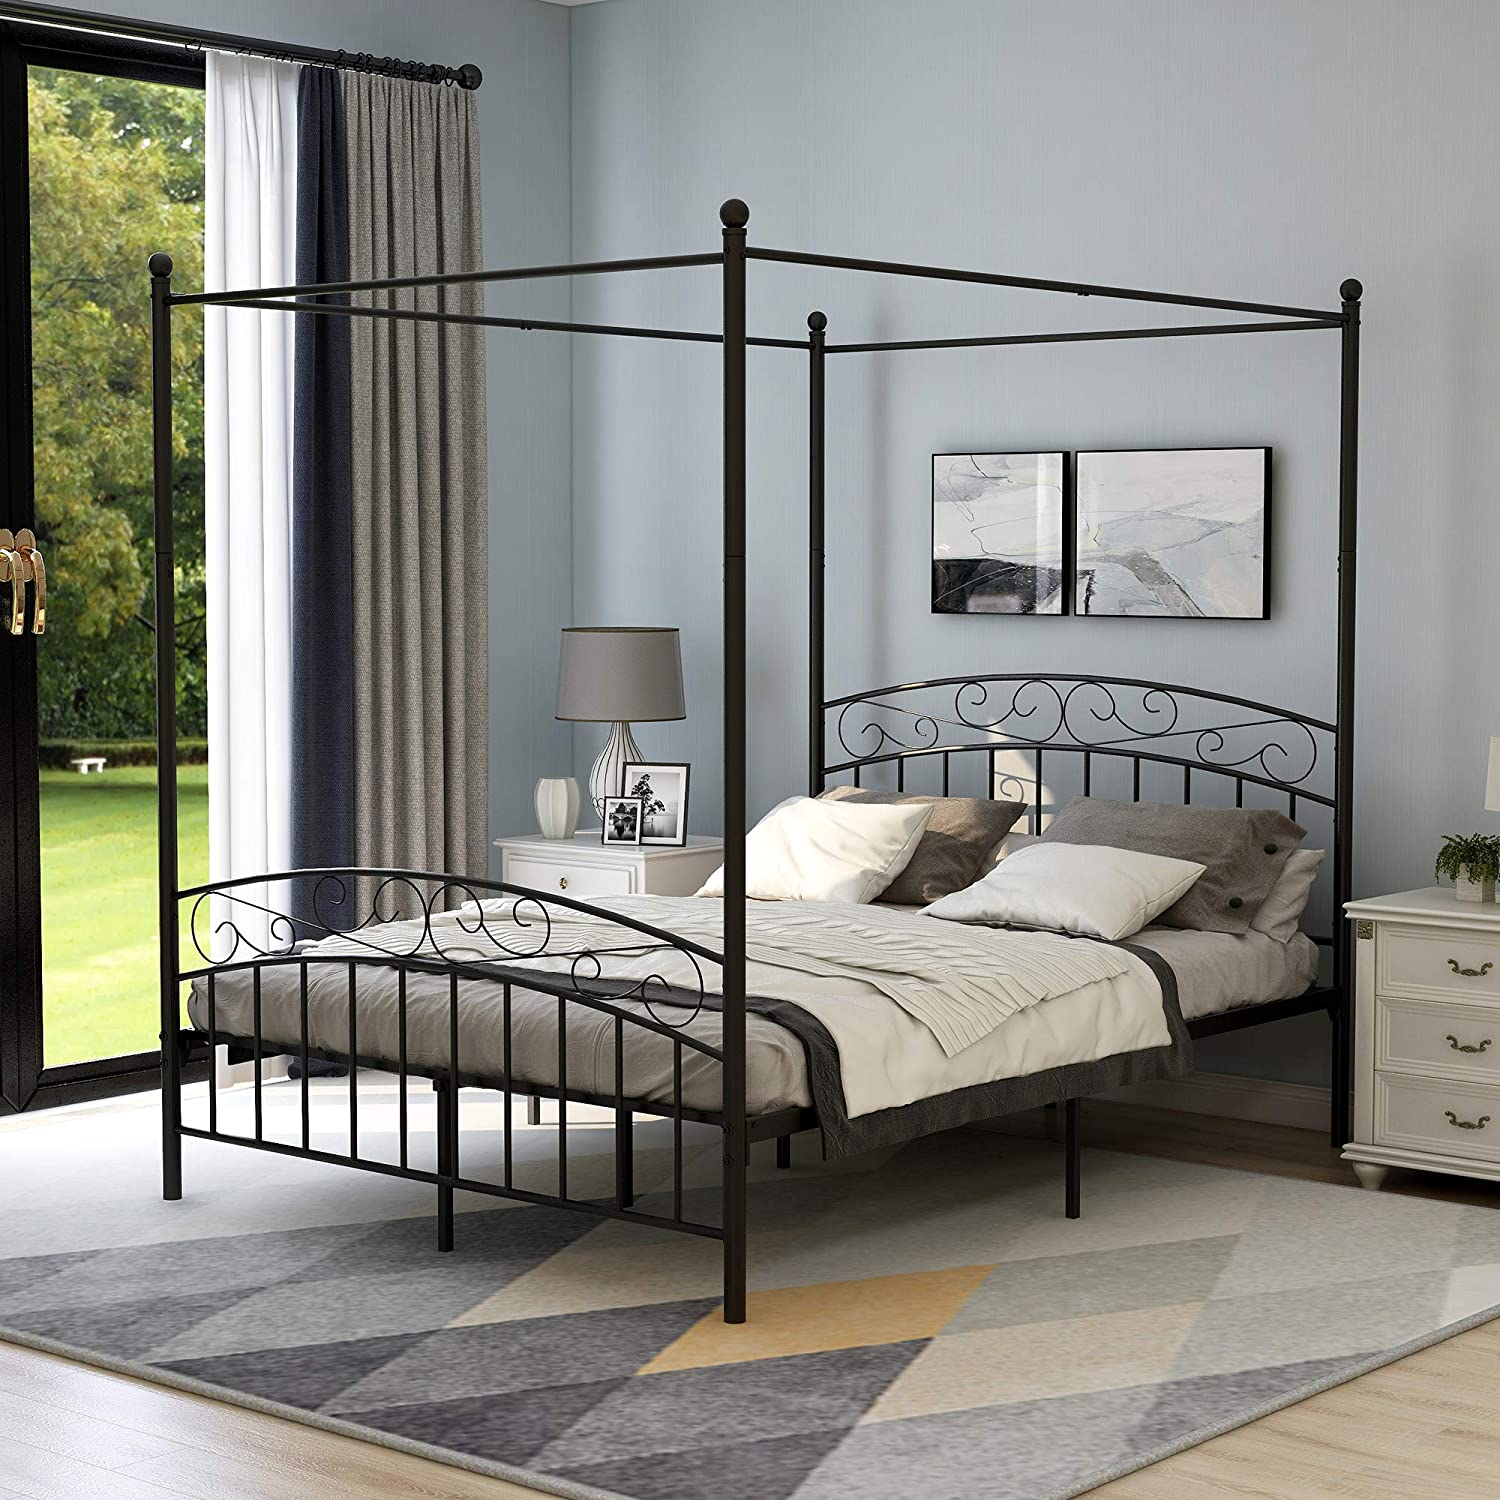 Queen Size Canopy Bed Frame with Headboard and Footboard Sturdy Metal Steel Easy Assembly, Texture Black